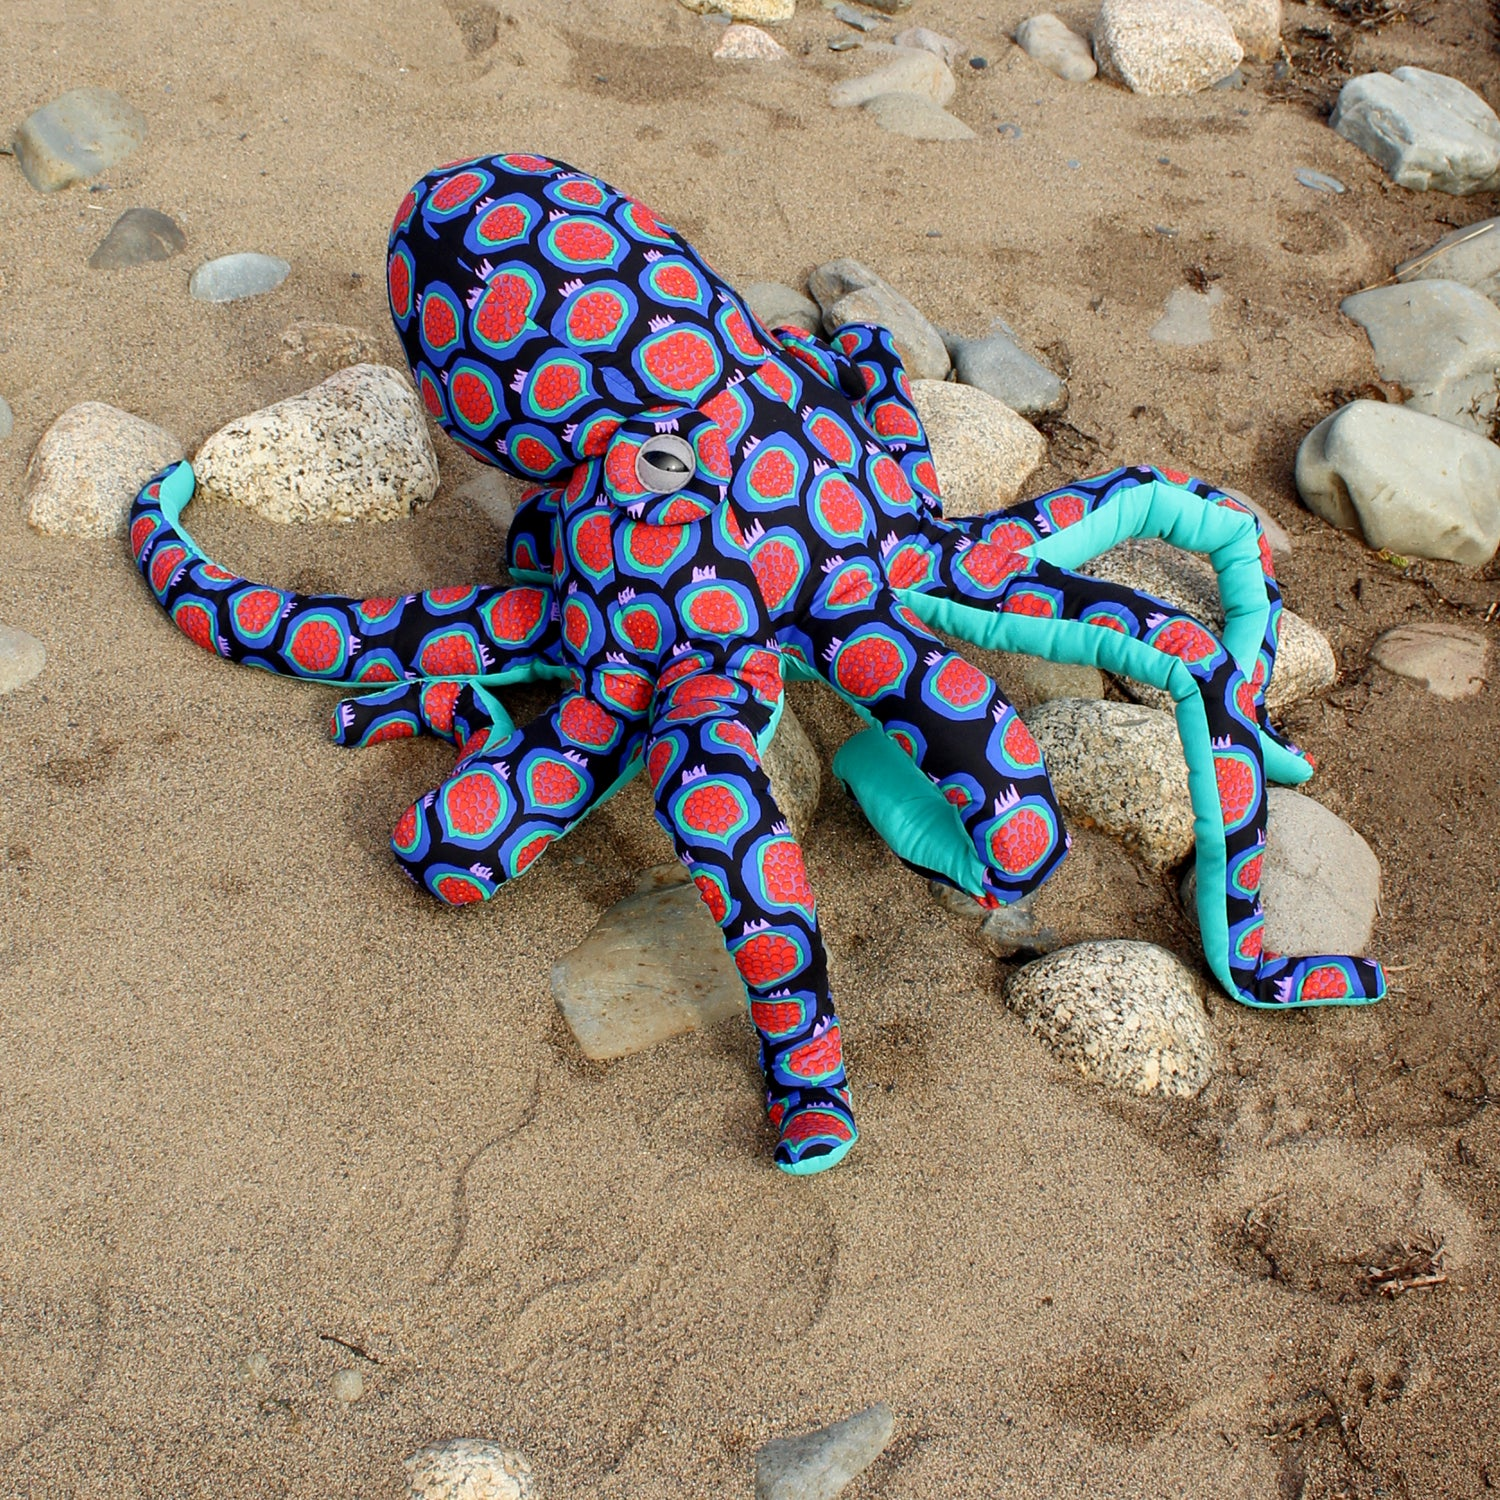 Giant Octopus Stuffed Animal Decor Soft Sculpture One of a Kind - Pomegranate Black